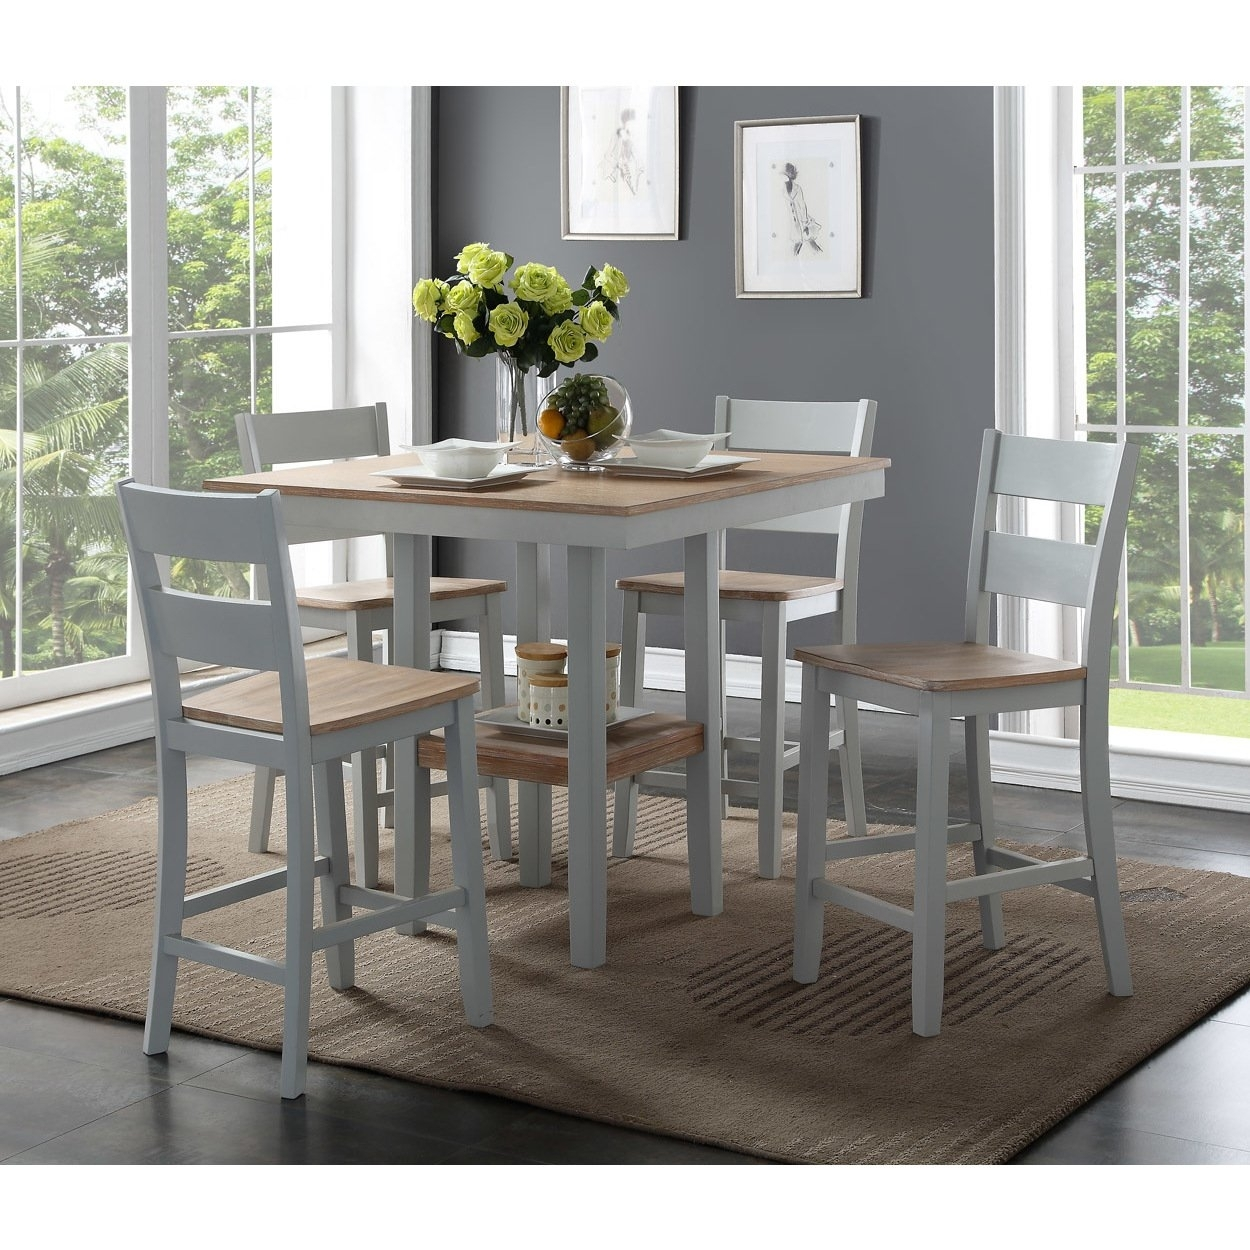 Shop Bernards York Counter 5 Piece Dining Set – Free Shipping Today Regarding Most Recently Released Harper 5 Piece Counter Sets (Image 12 of 20)